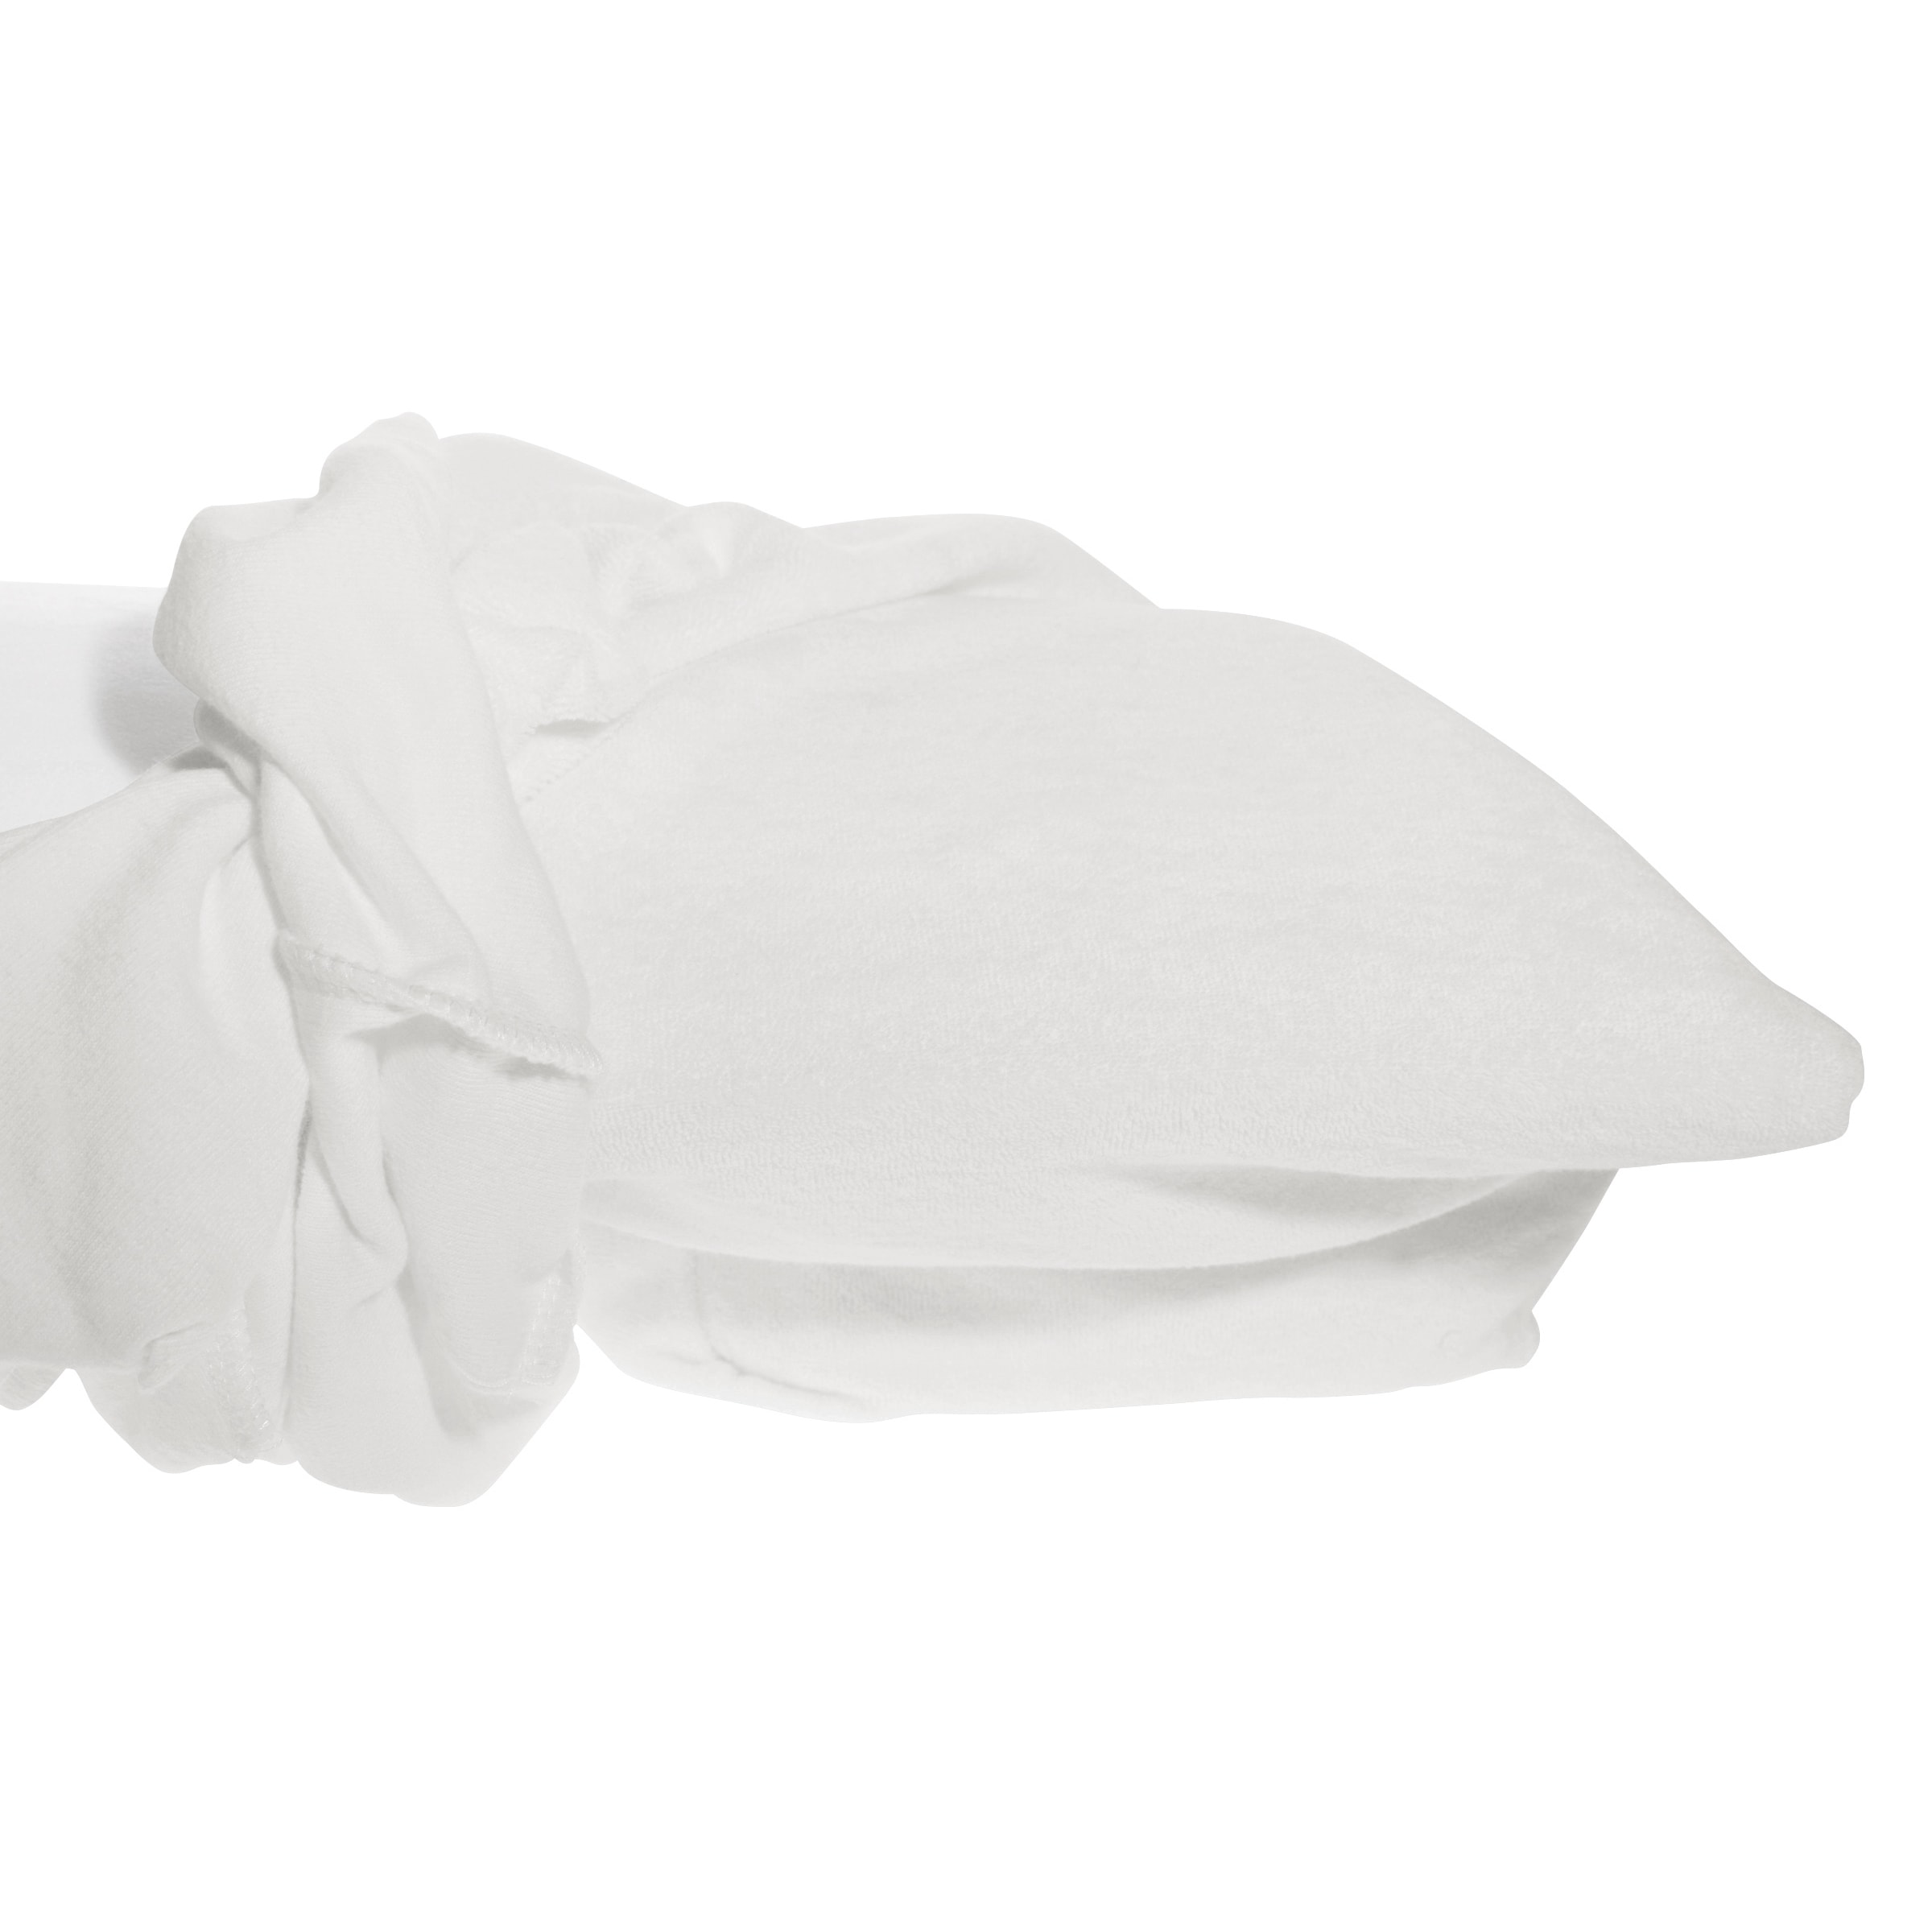 Terry Cloth Cover For Better Sleep Pillow Memory Foam Version White Free Shipping On Orders Over 45 10664861